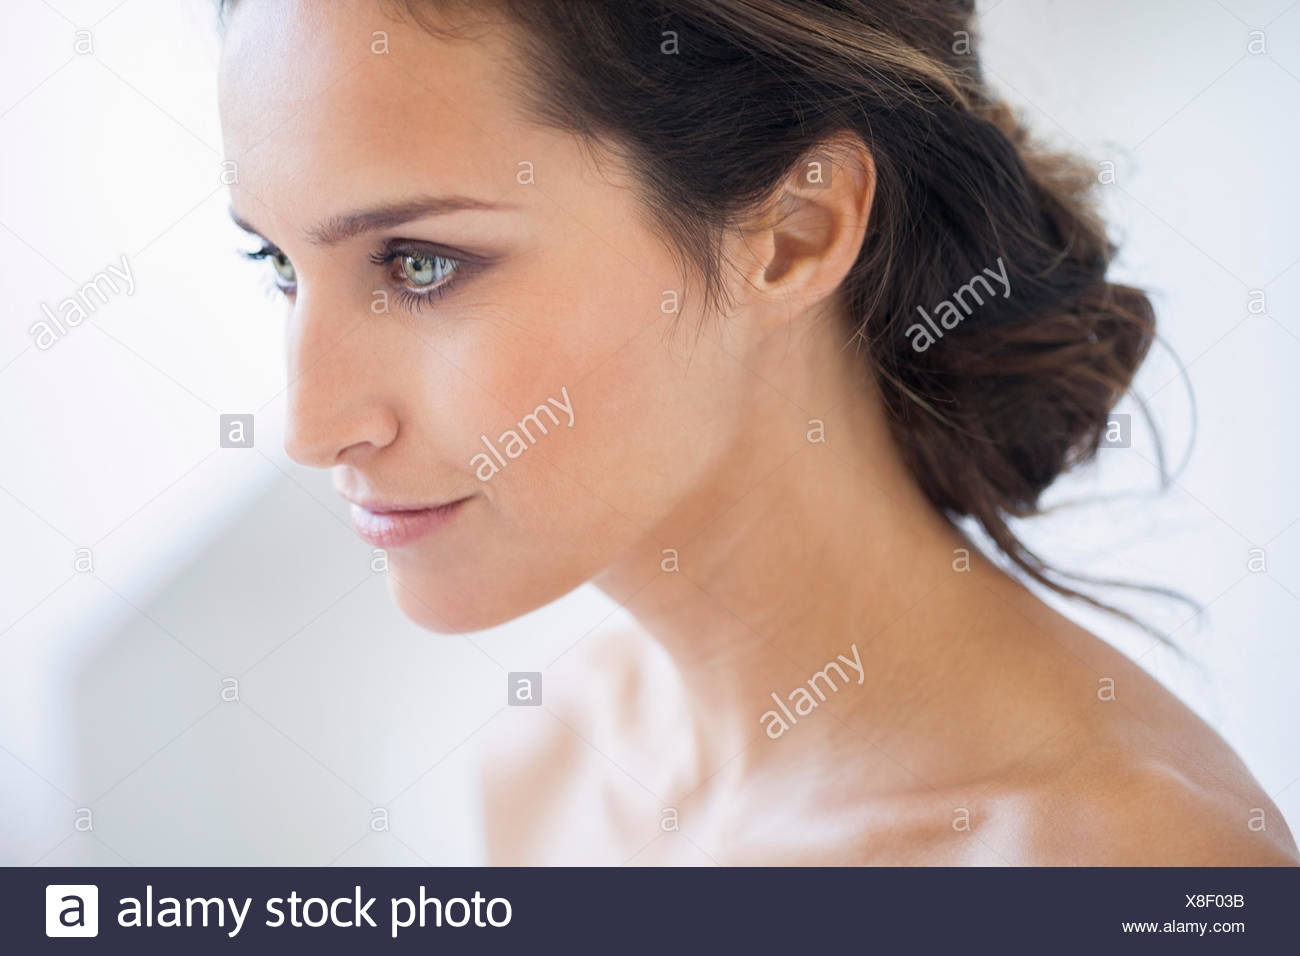 Portrait of a beautiful woman smiling - Stock Image